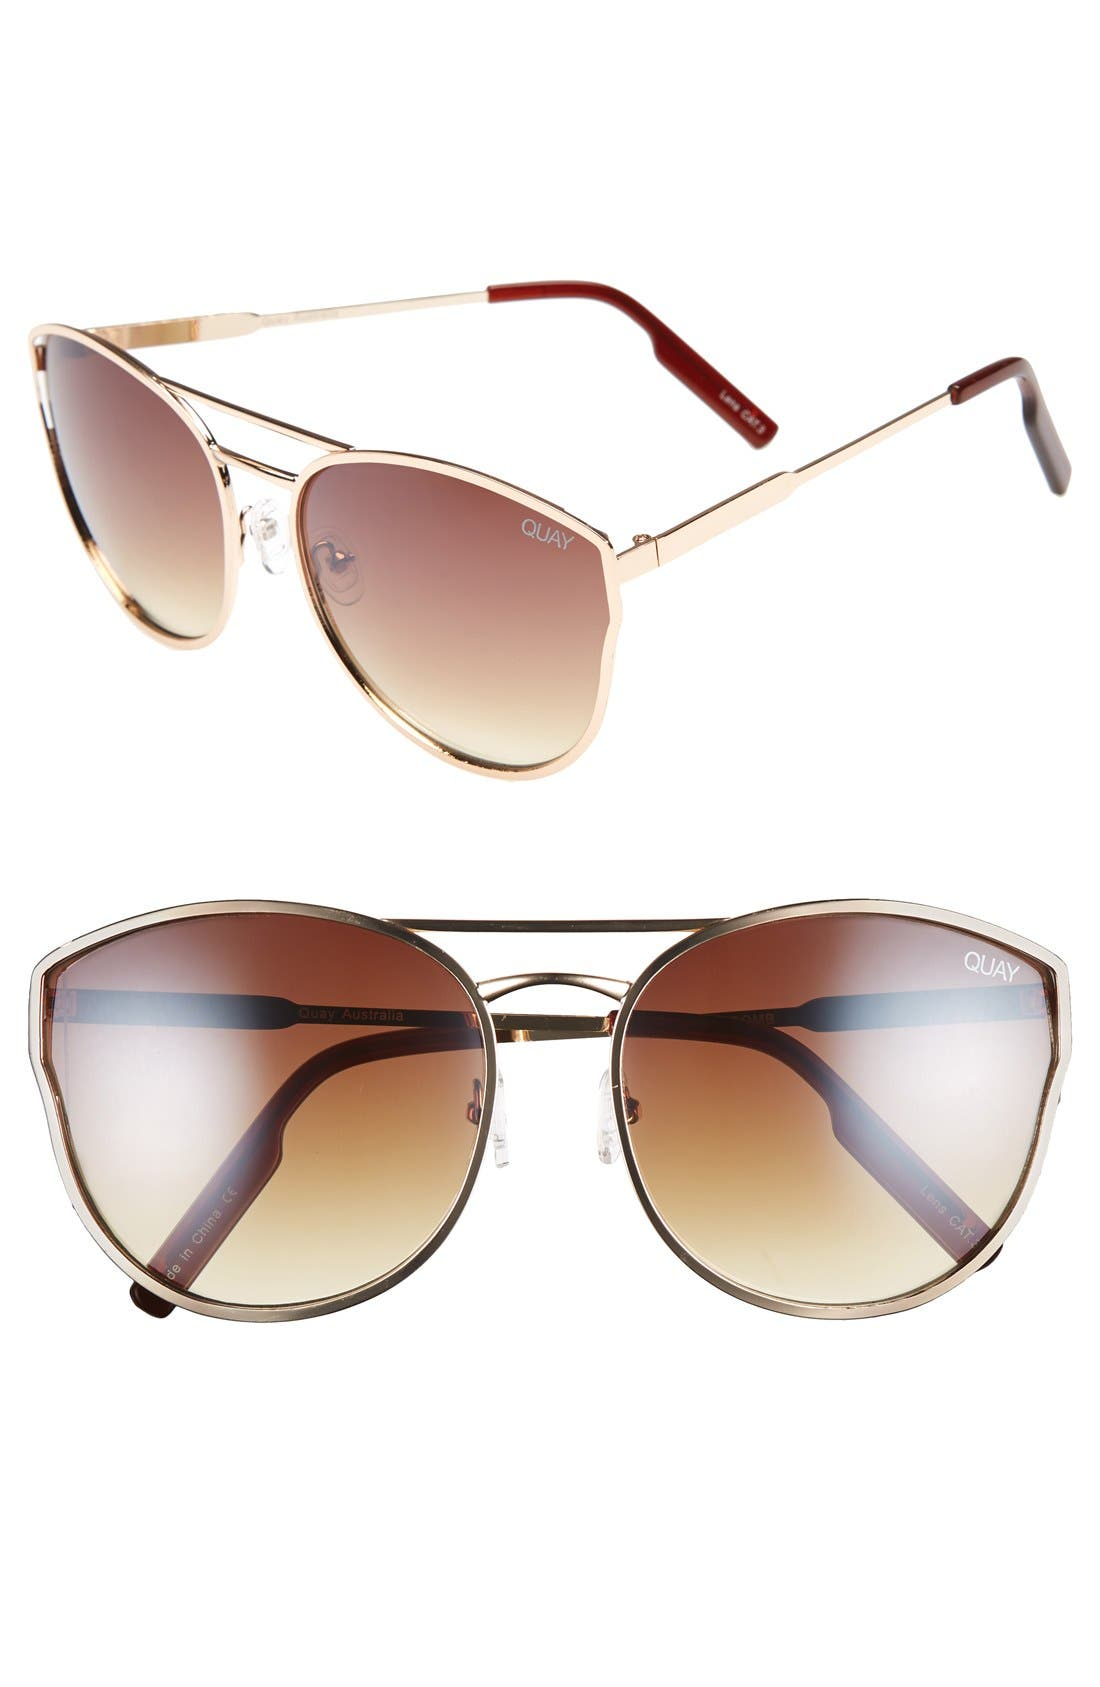 Quay Australia Cherry Bomb 60mm Sunglasses